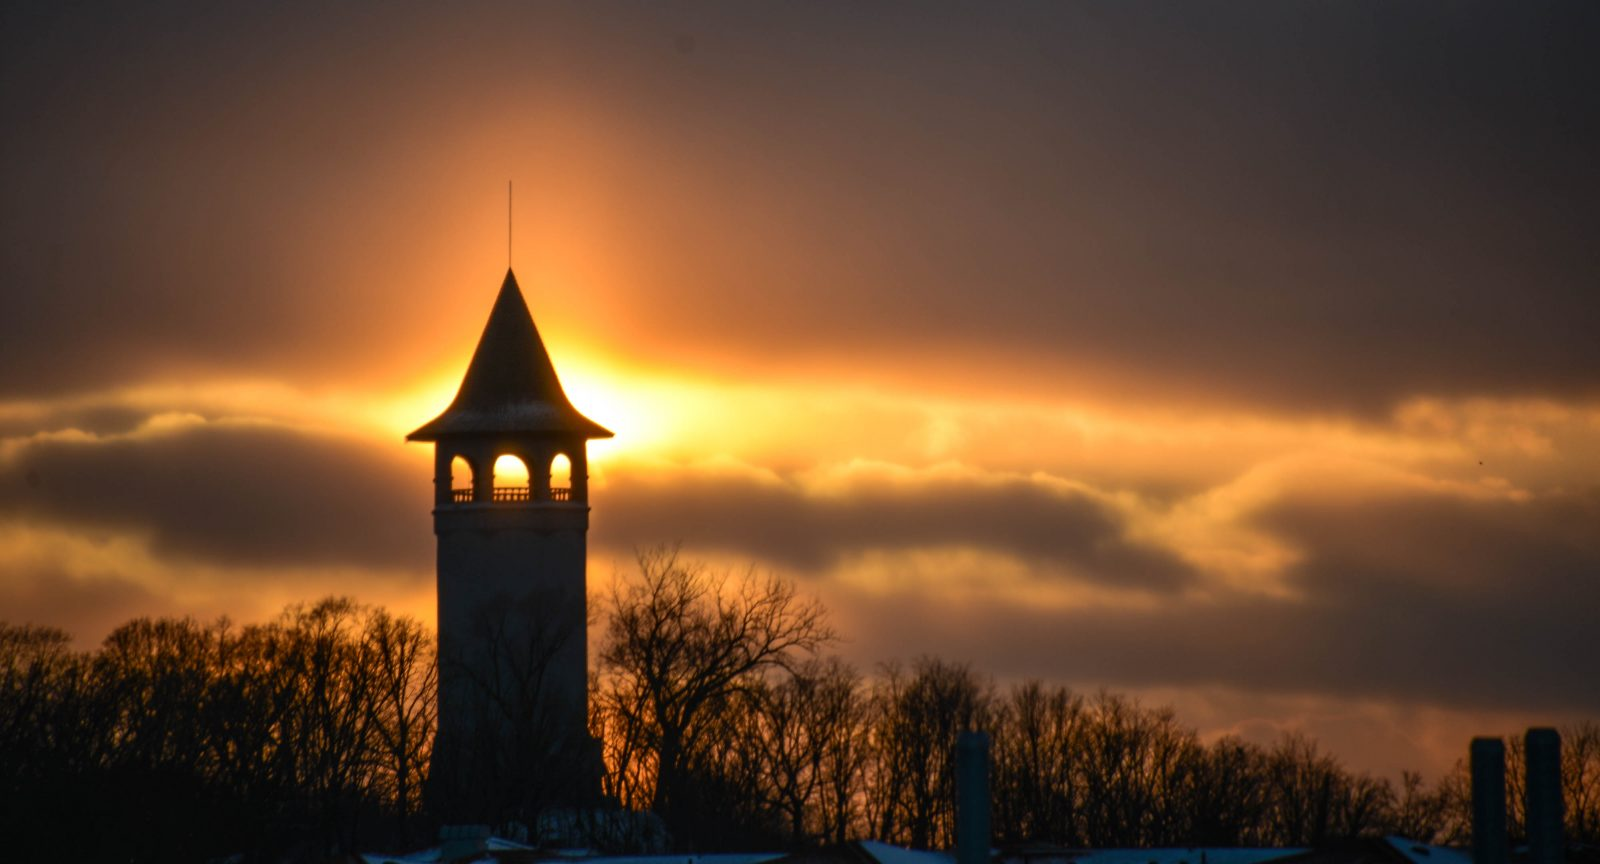 Sunset Over Witches Hat Tower